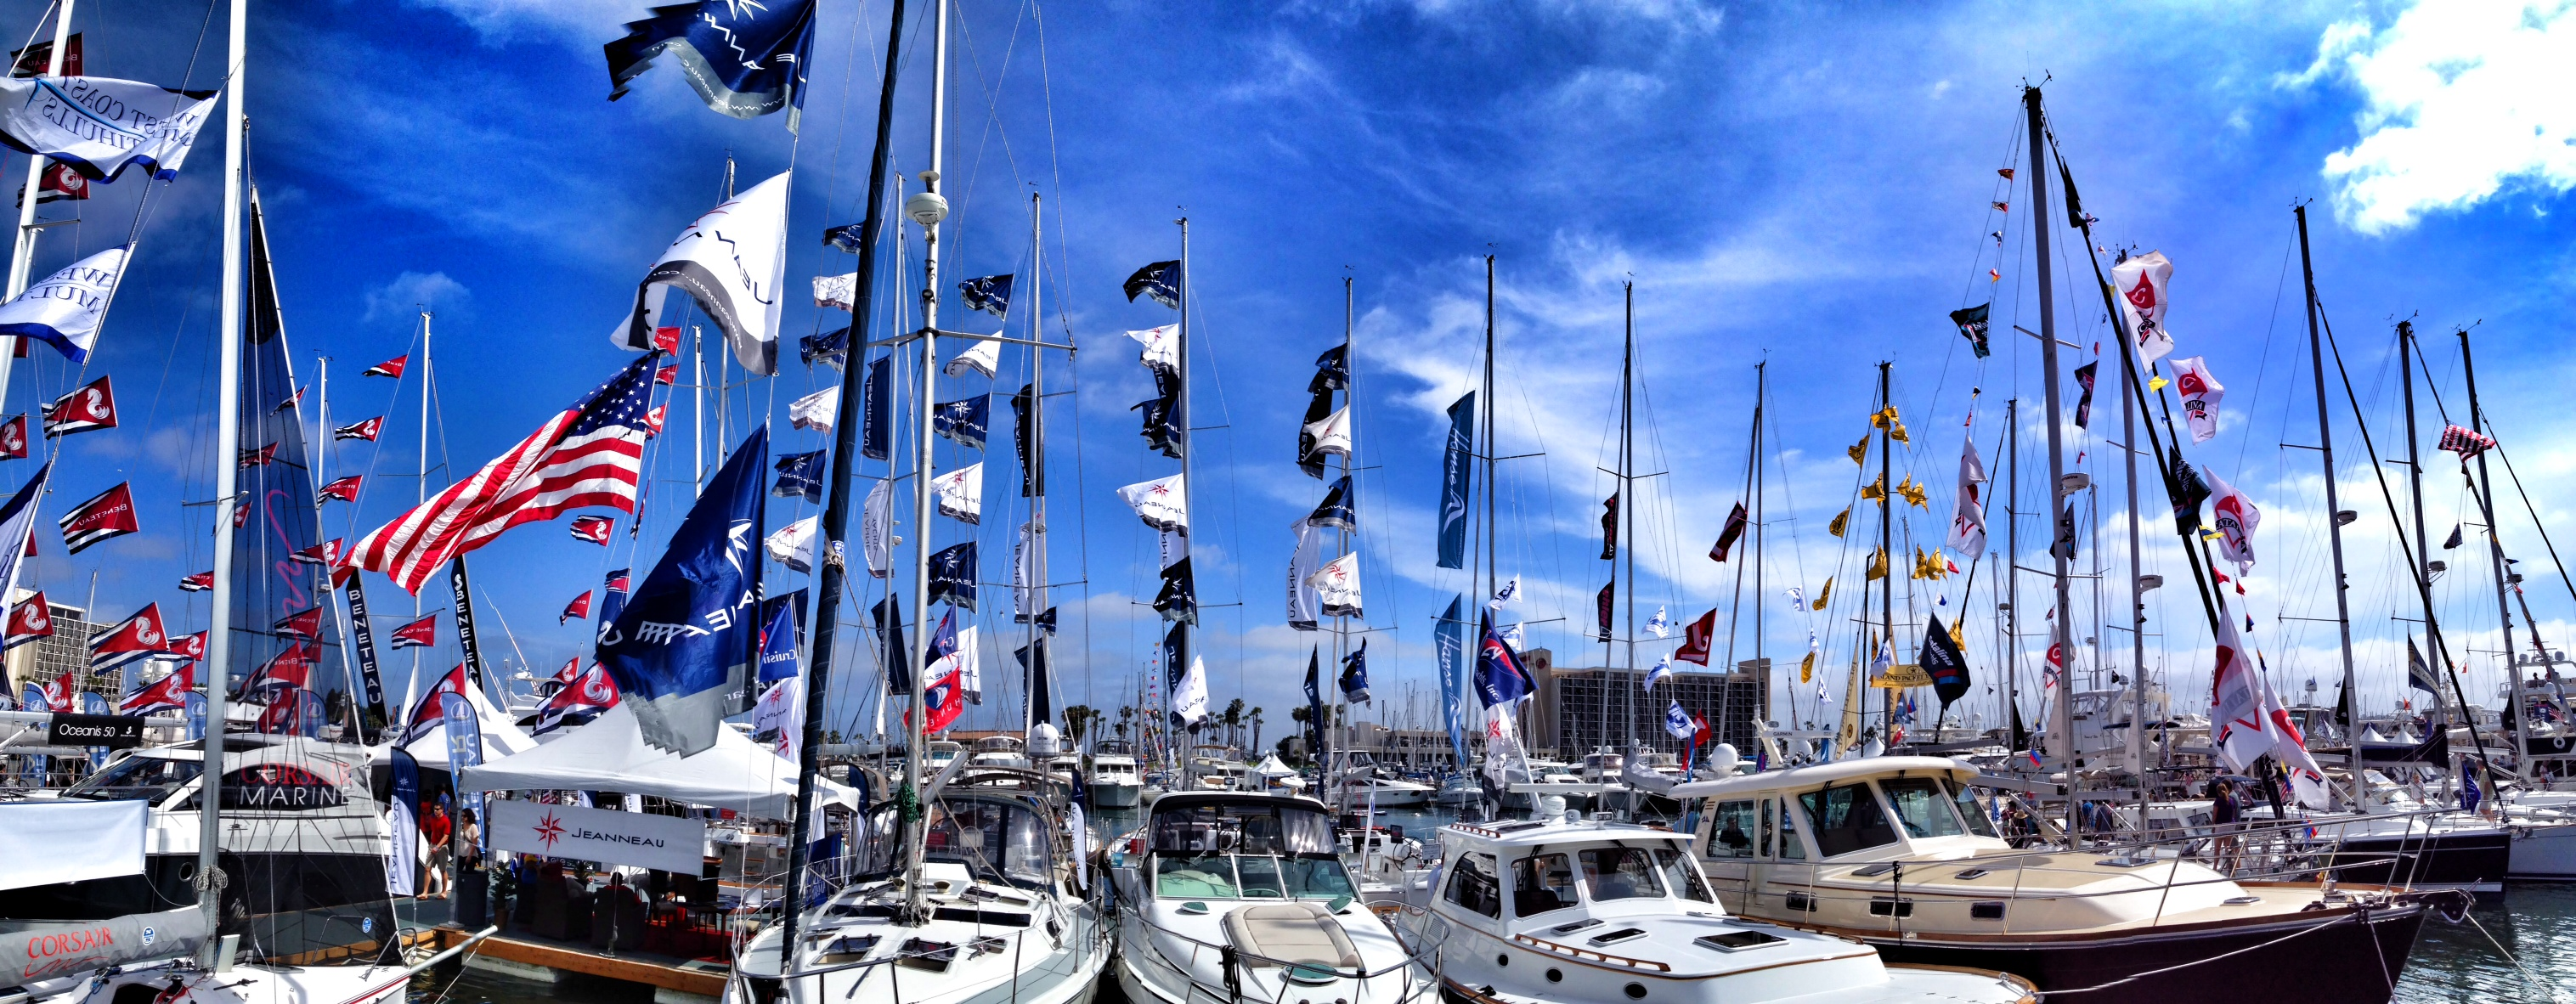 San Diego International Boat Show drops anchor June 19-22